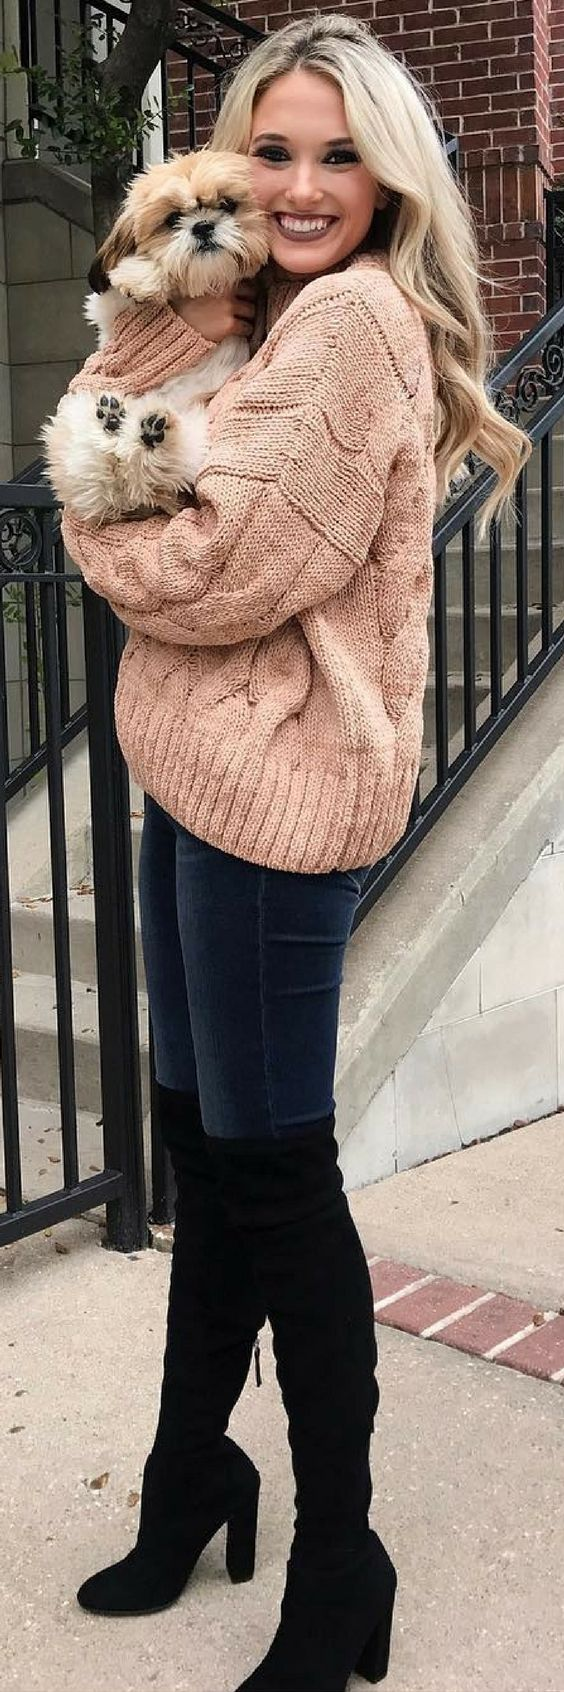 Get Inspired With 3 Of The Most Delightful Fall Outfits https://ecstasymodels.blog/2017/11/15/get-inspired-3-delightful-fall-outfits/